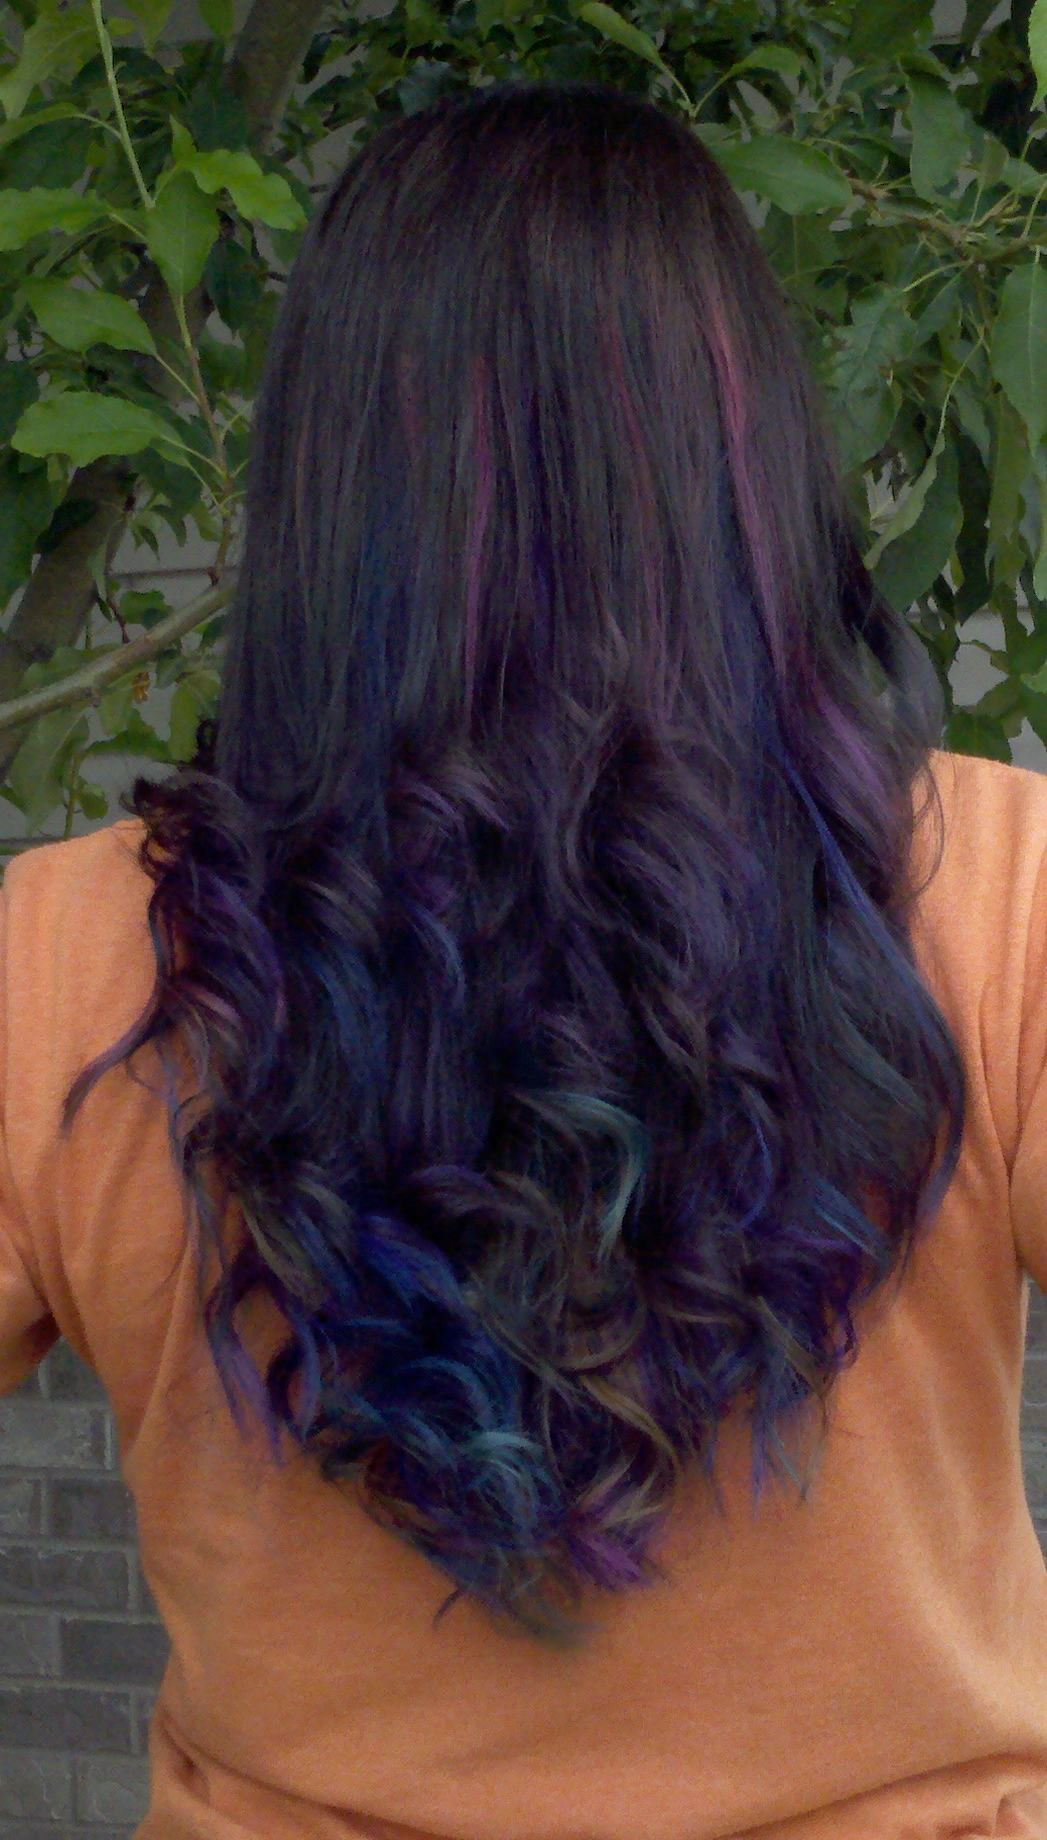 Hair Highlights Dye And I M Undecided Purple Brown Hair Hair Highlights Purple Hair